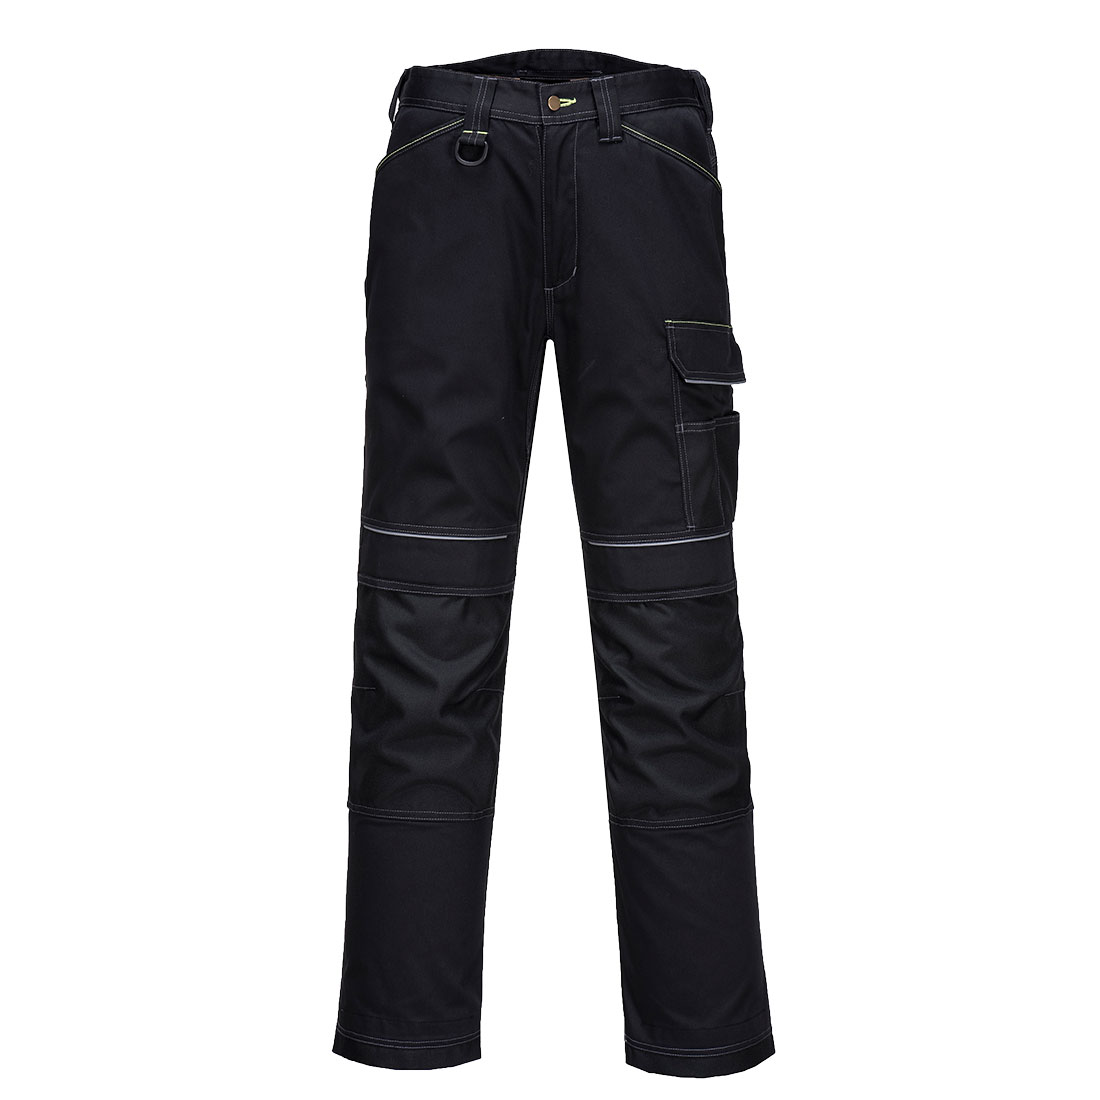 PW3 Work Trousers Black 42S